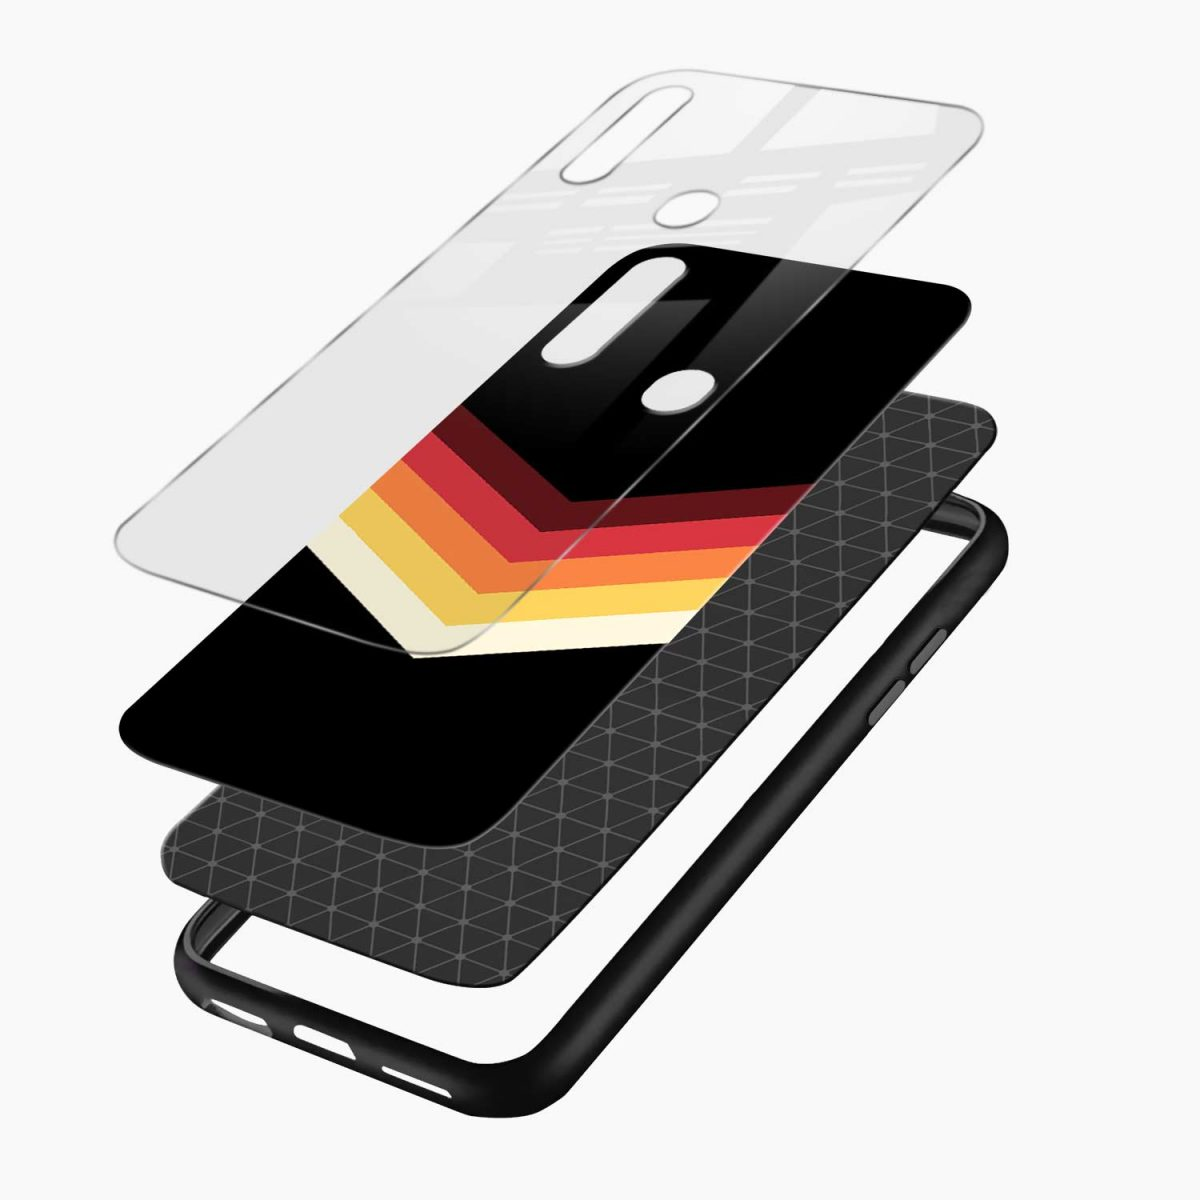 rewind strips pattern layers view oppo a31 back cover